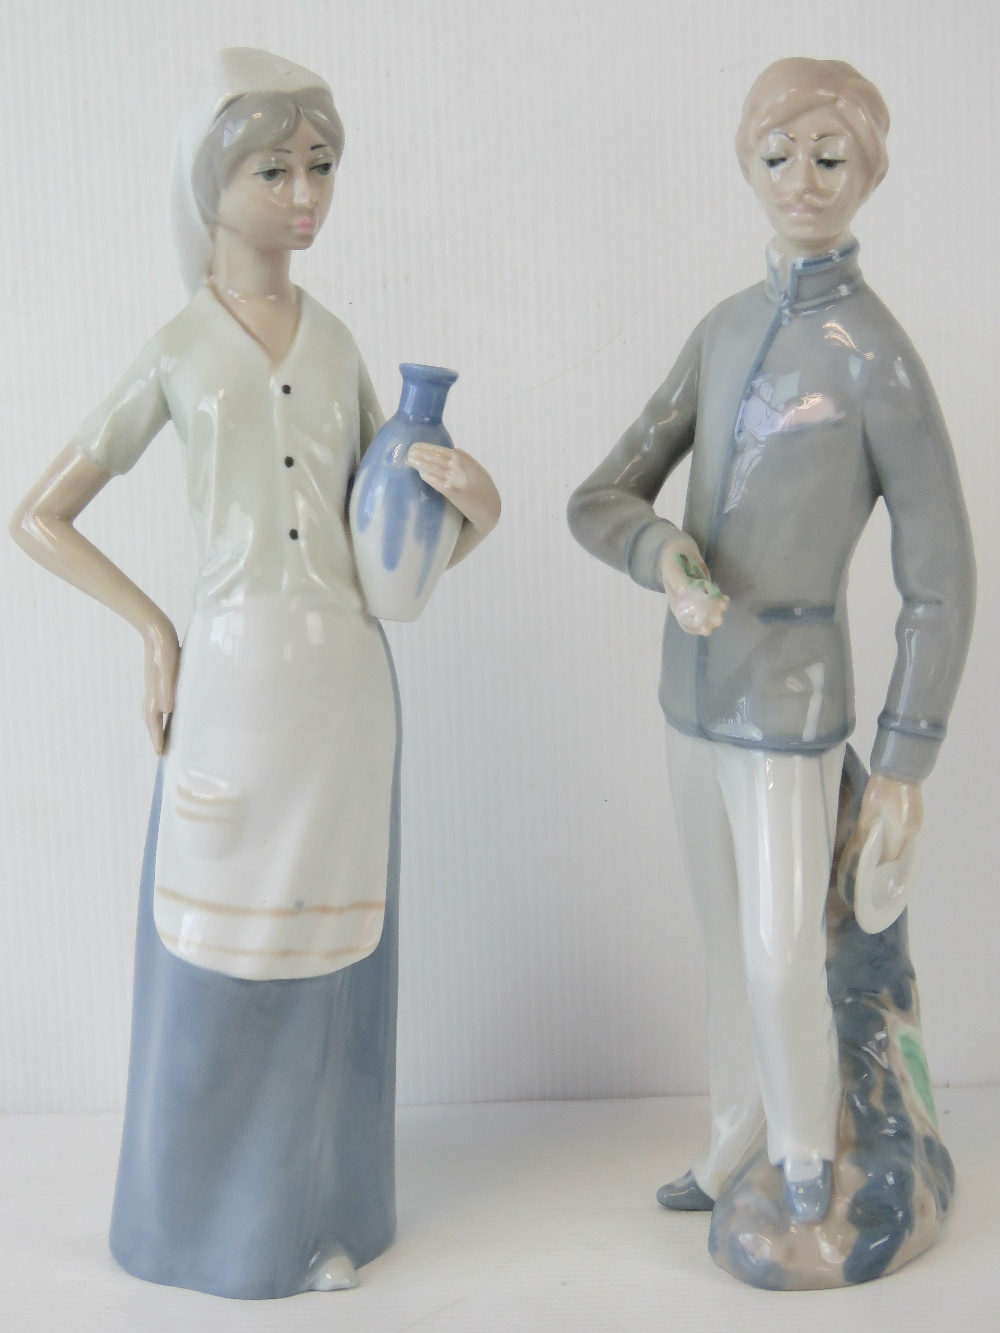 A pair of Spanish porcelain figures by C